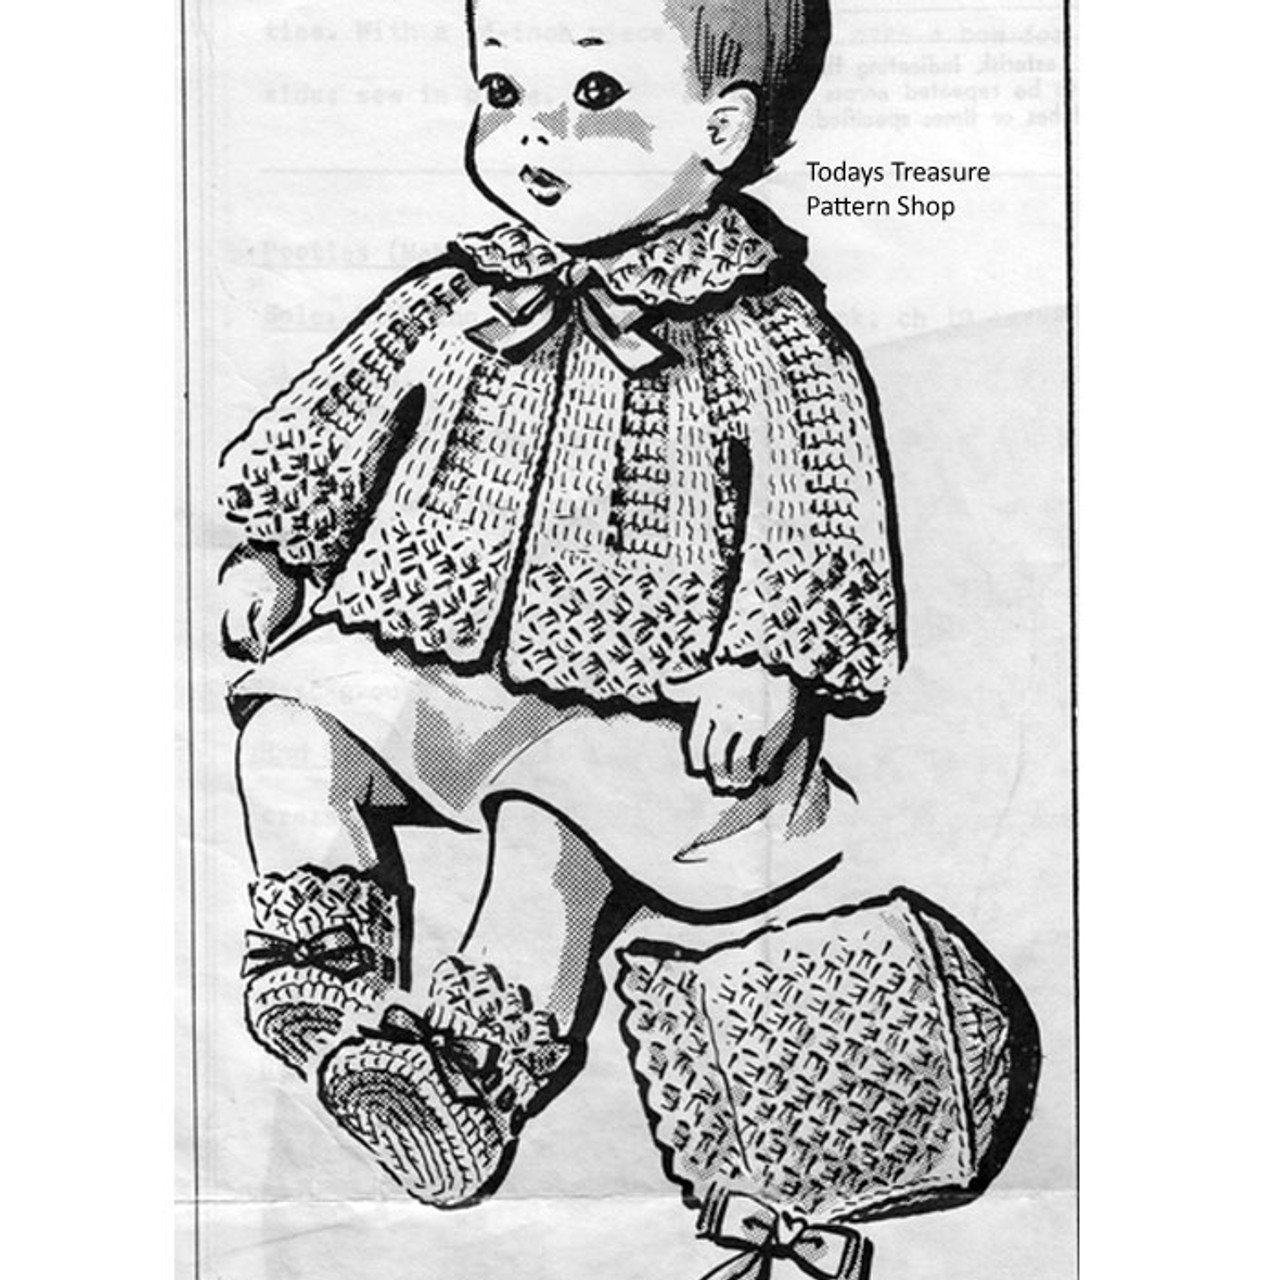 Mail Order Design 5877, Crocheted Baby Jacket